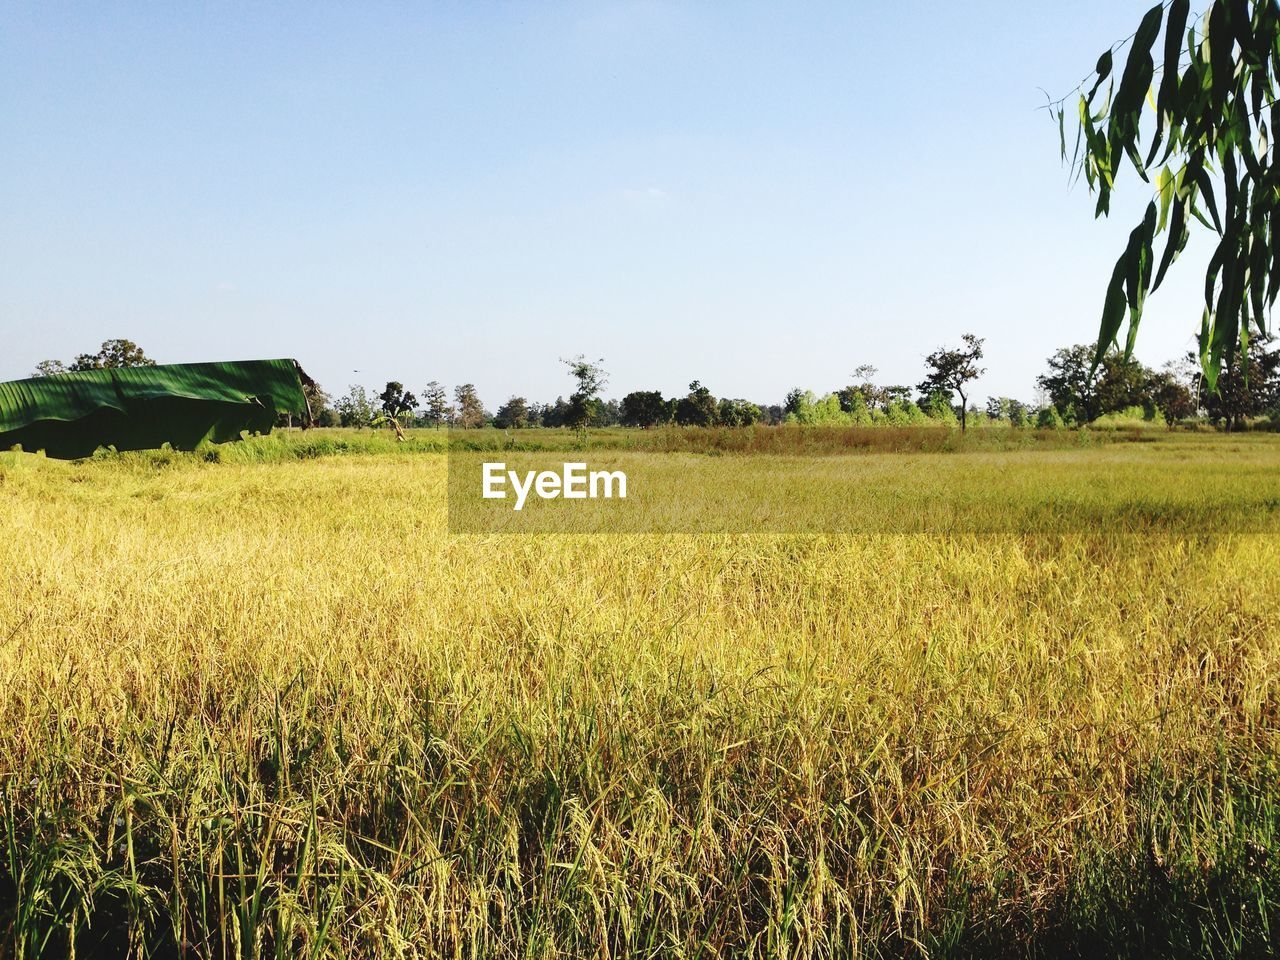 plant, sky, field, tree, land, landscape, nature, environment, growth, beauty in nature, grass, tranquility, clear sky, tranquil scene, agriculture, scenics - nature, no people, green color, rural scene, day, outdoors